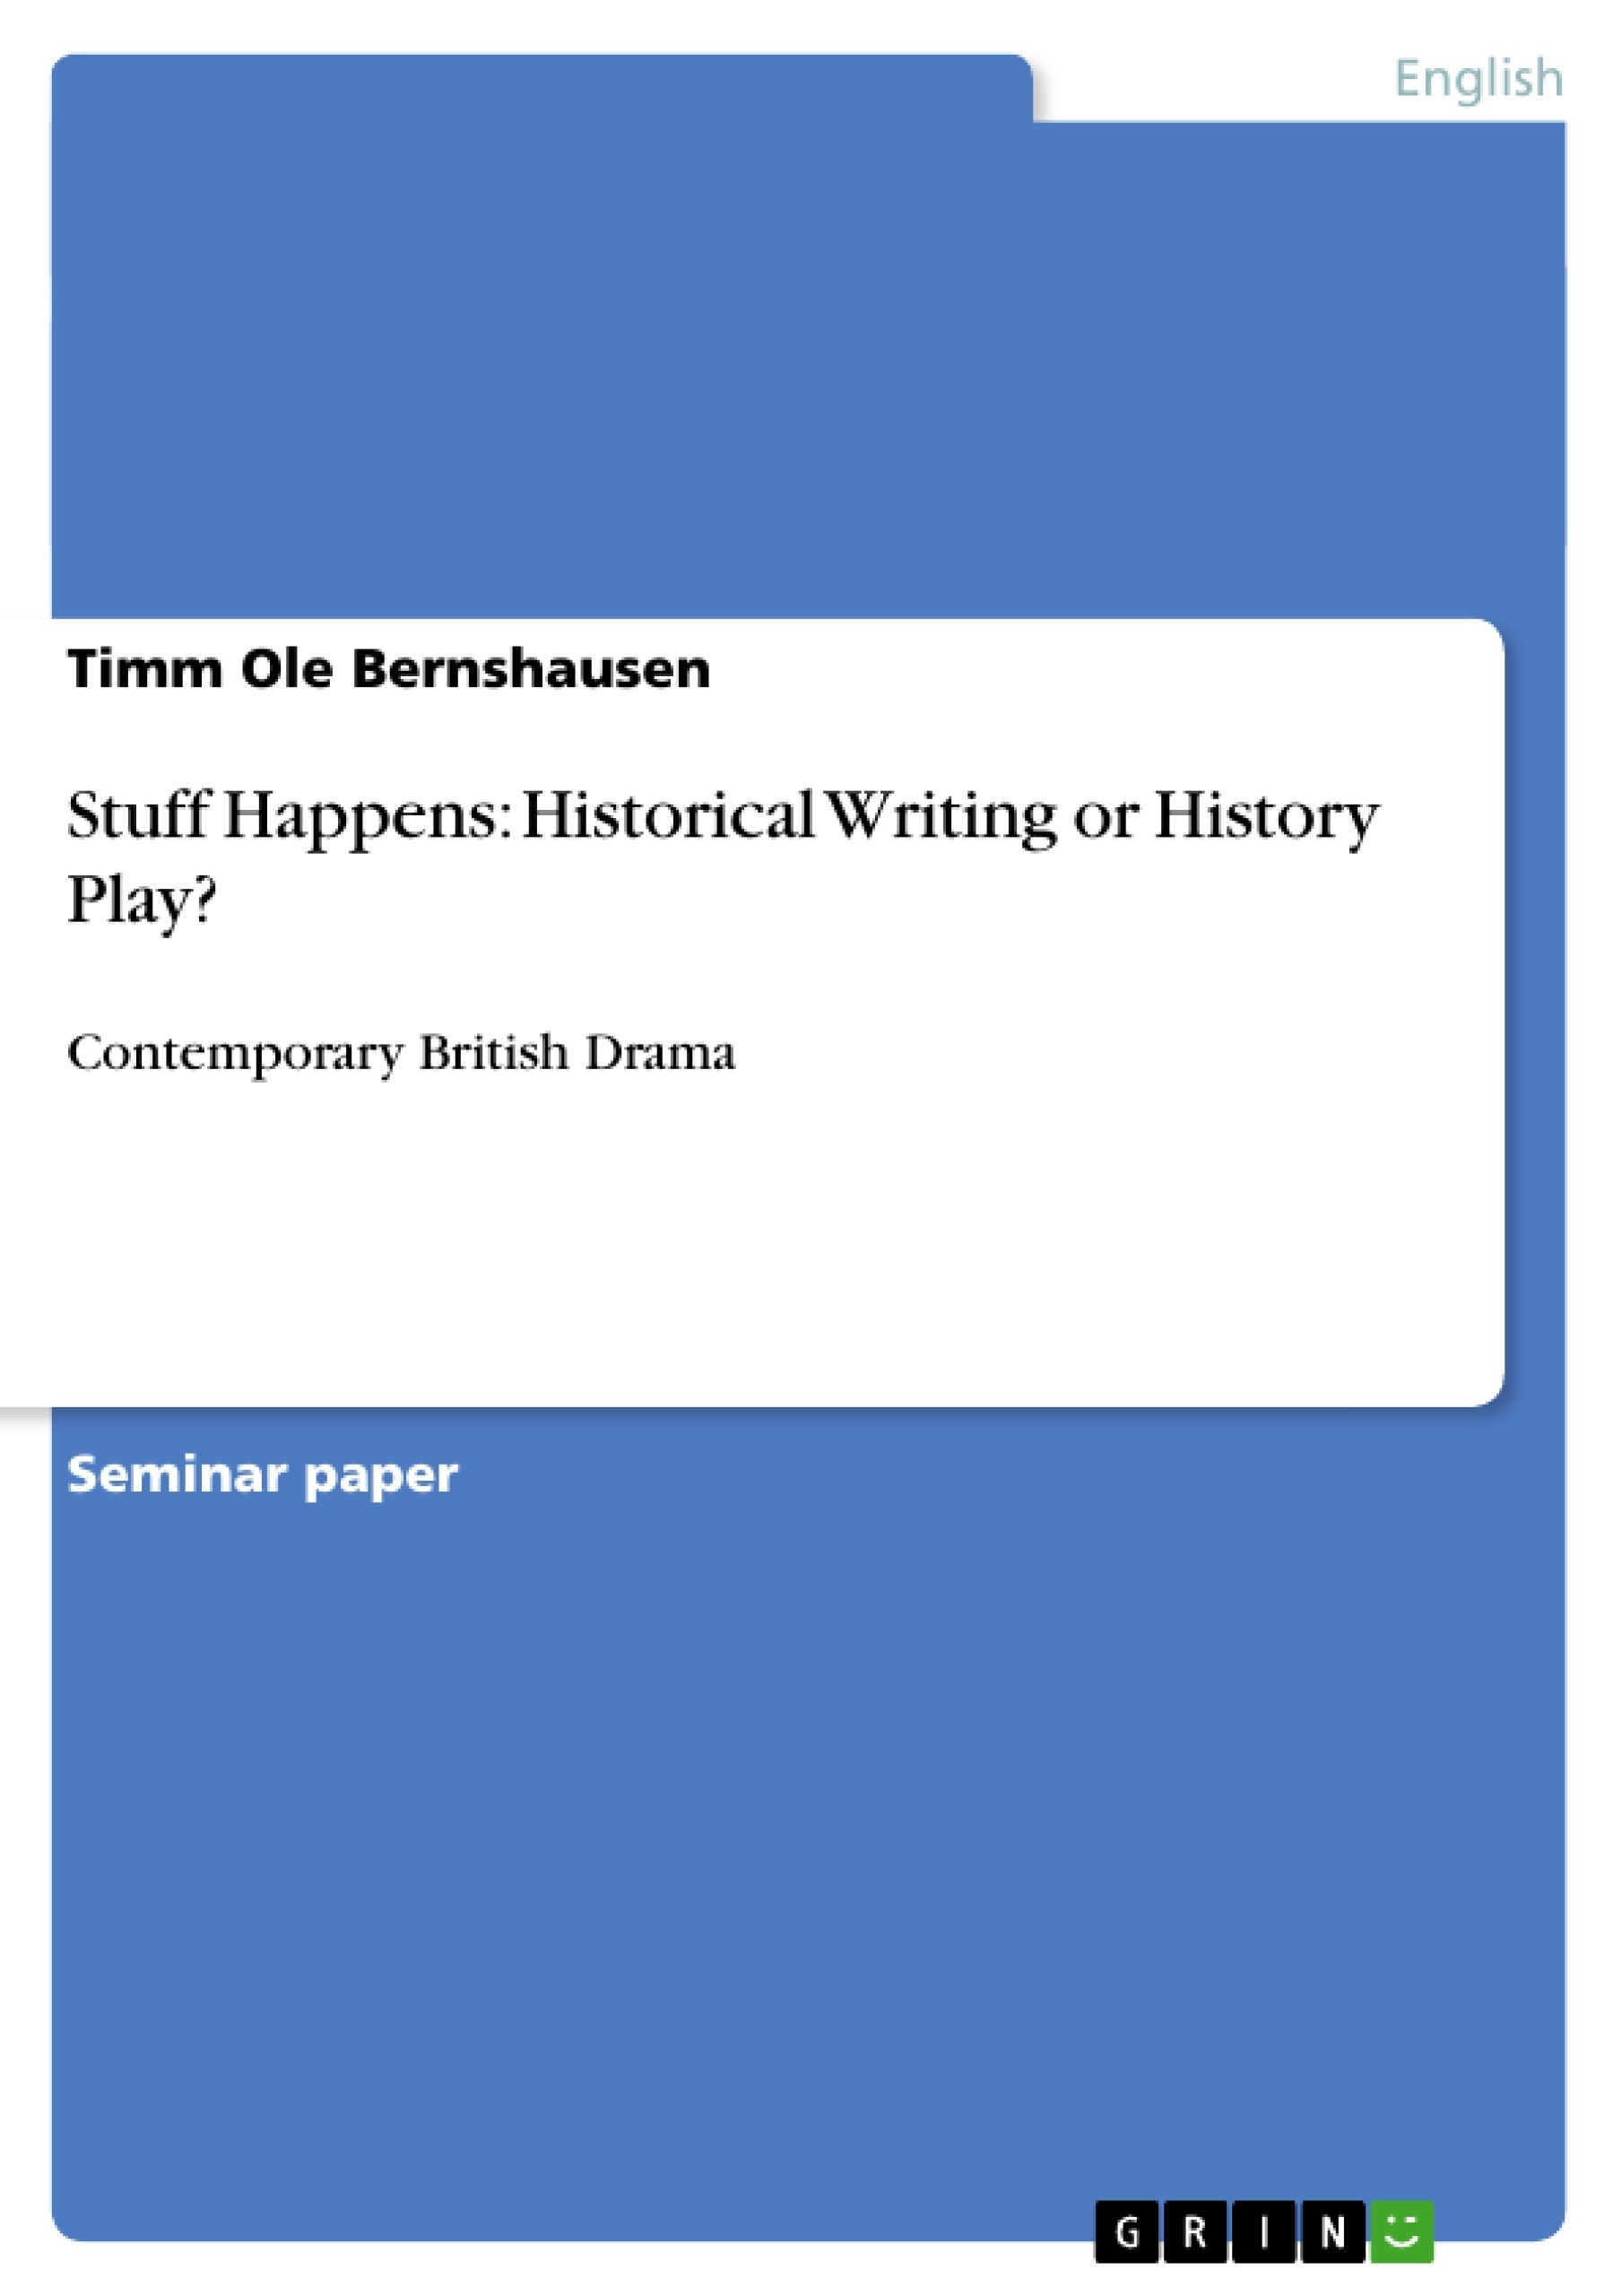 Title: Stuff Happens: Historical Writing or History Play?